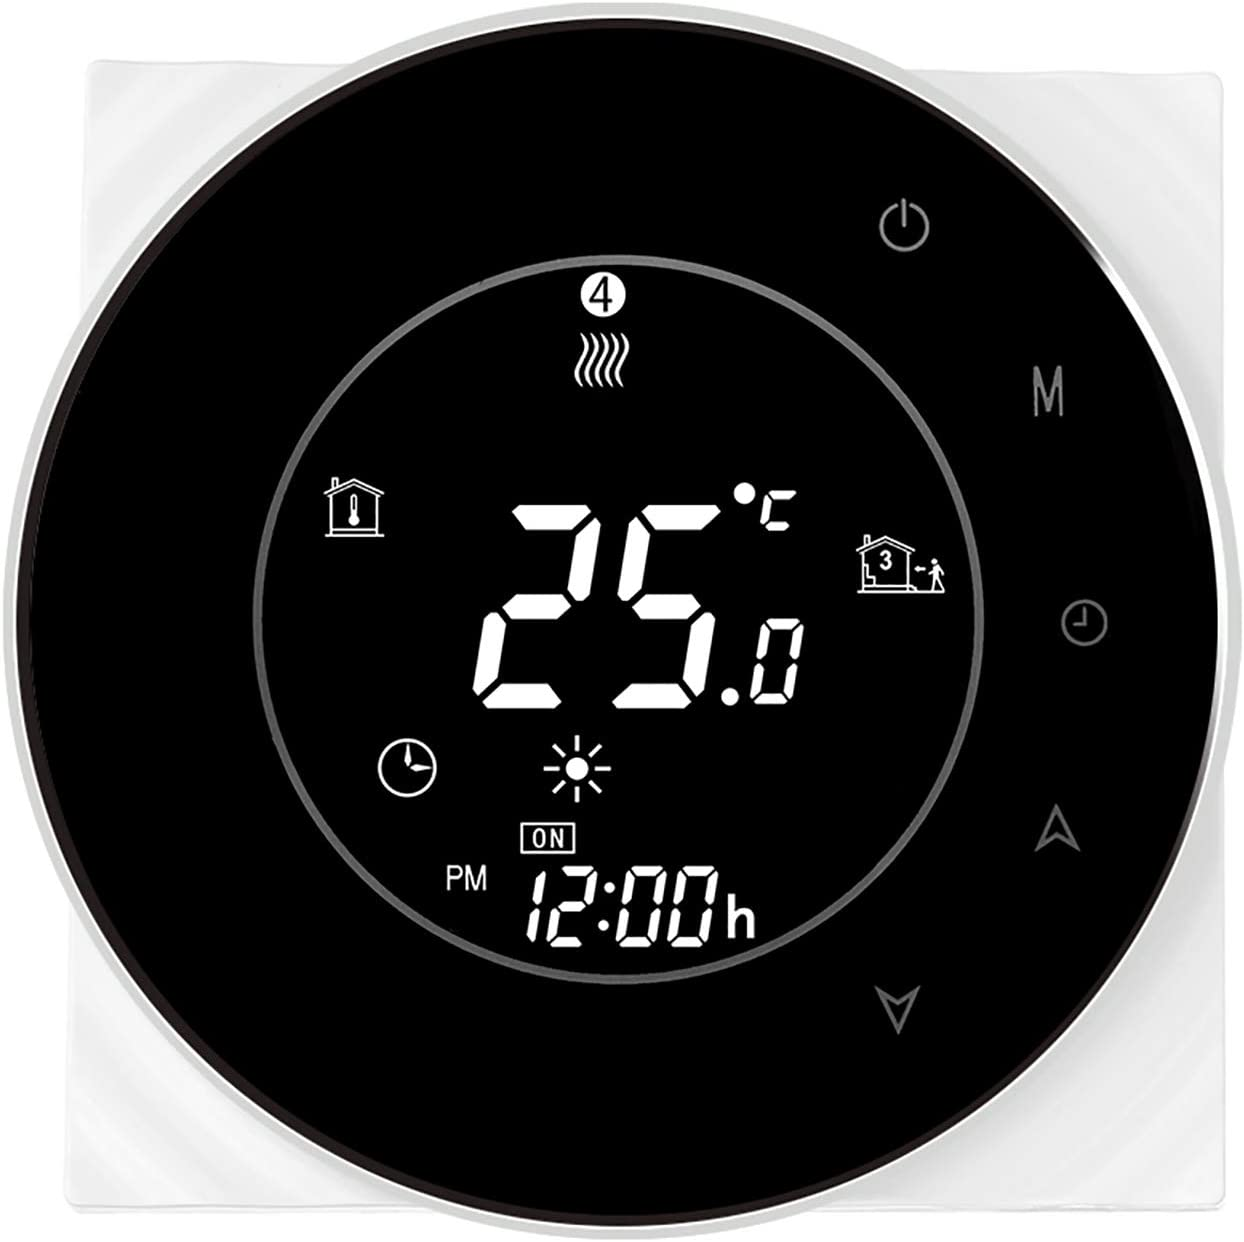 OWSOO THP6000-GCLW Water/Gas Boiler Thermostat Smart WiFi Digital Temperature Controller Tuya/SmartLife APP Control Backlit LCD Display Programmable Voice Control, Black